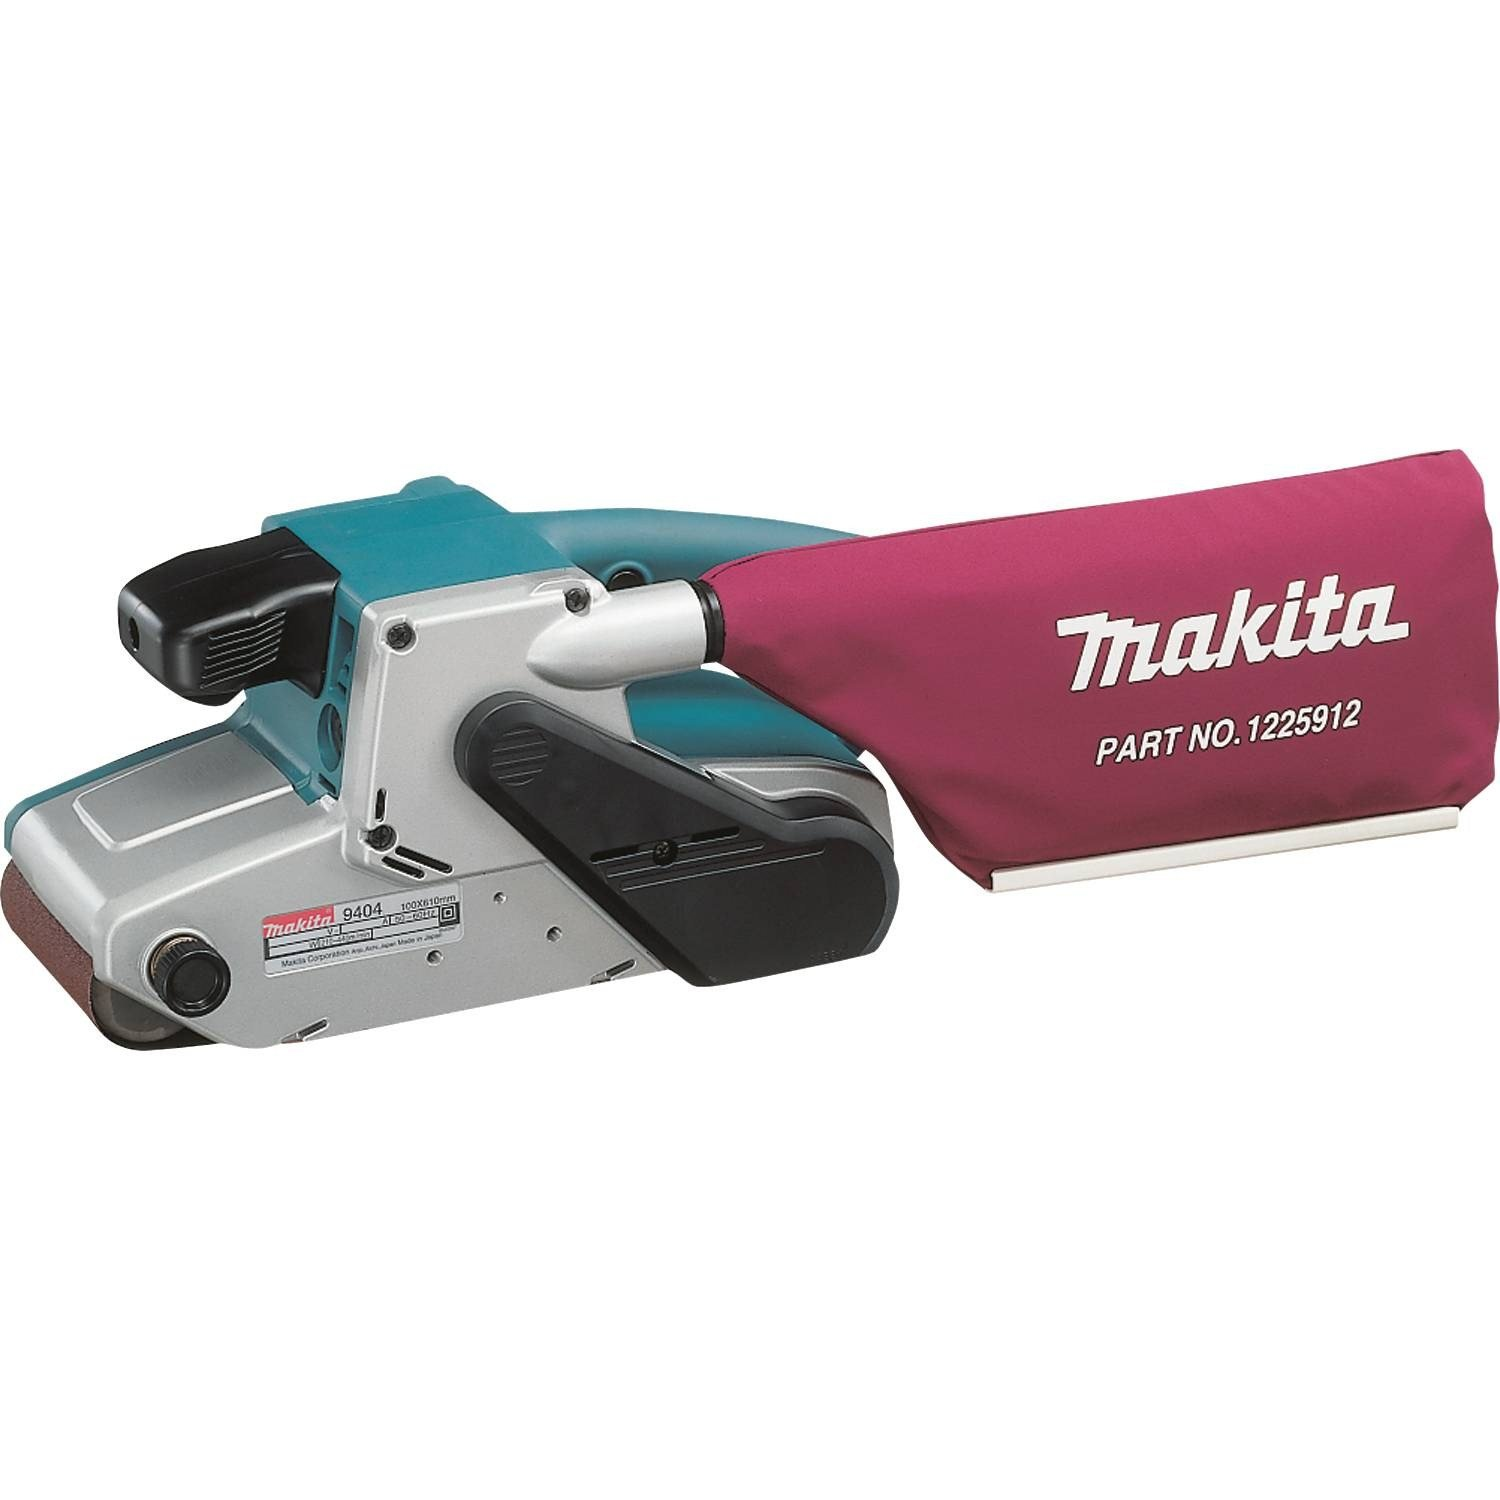 Makita 9404 featured image